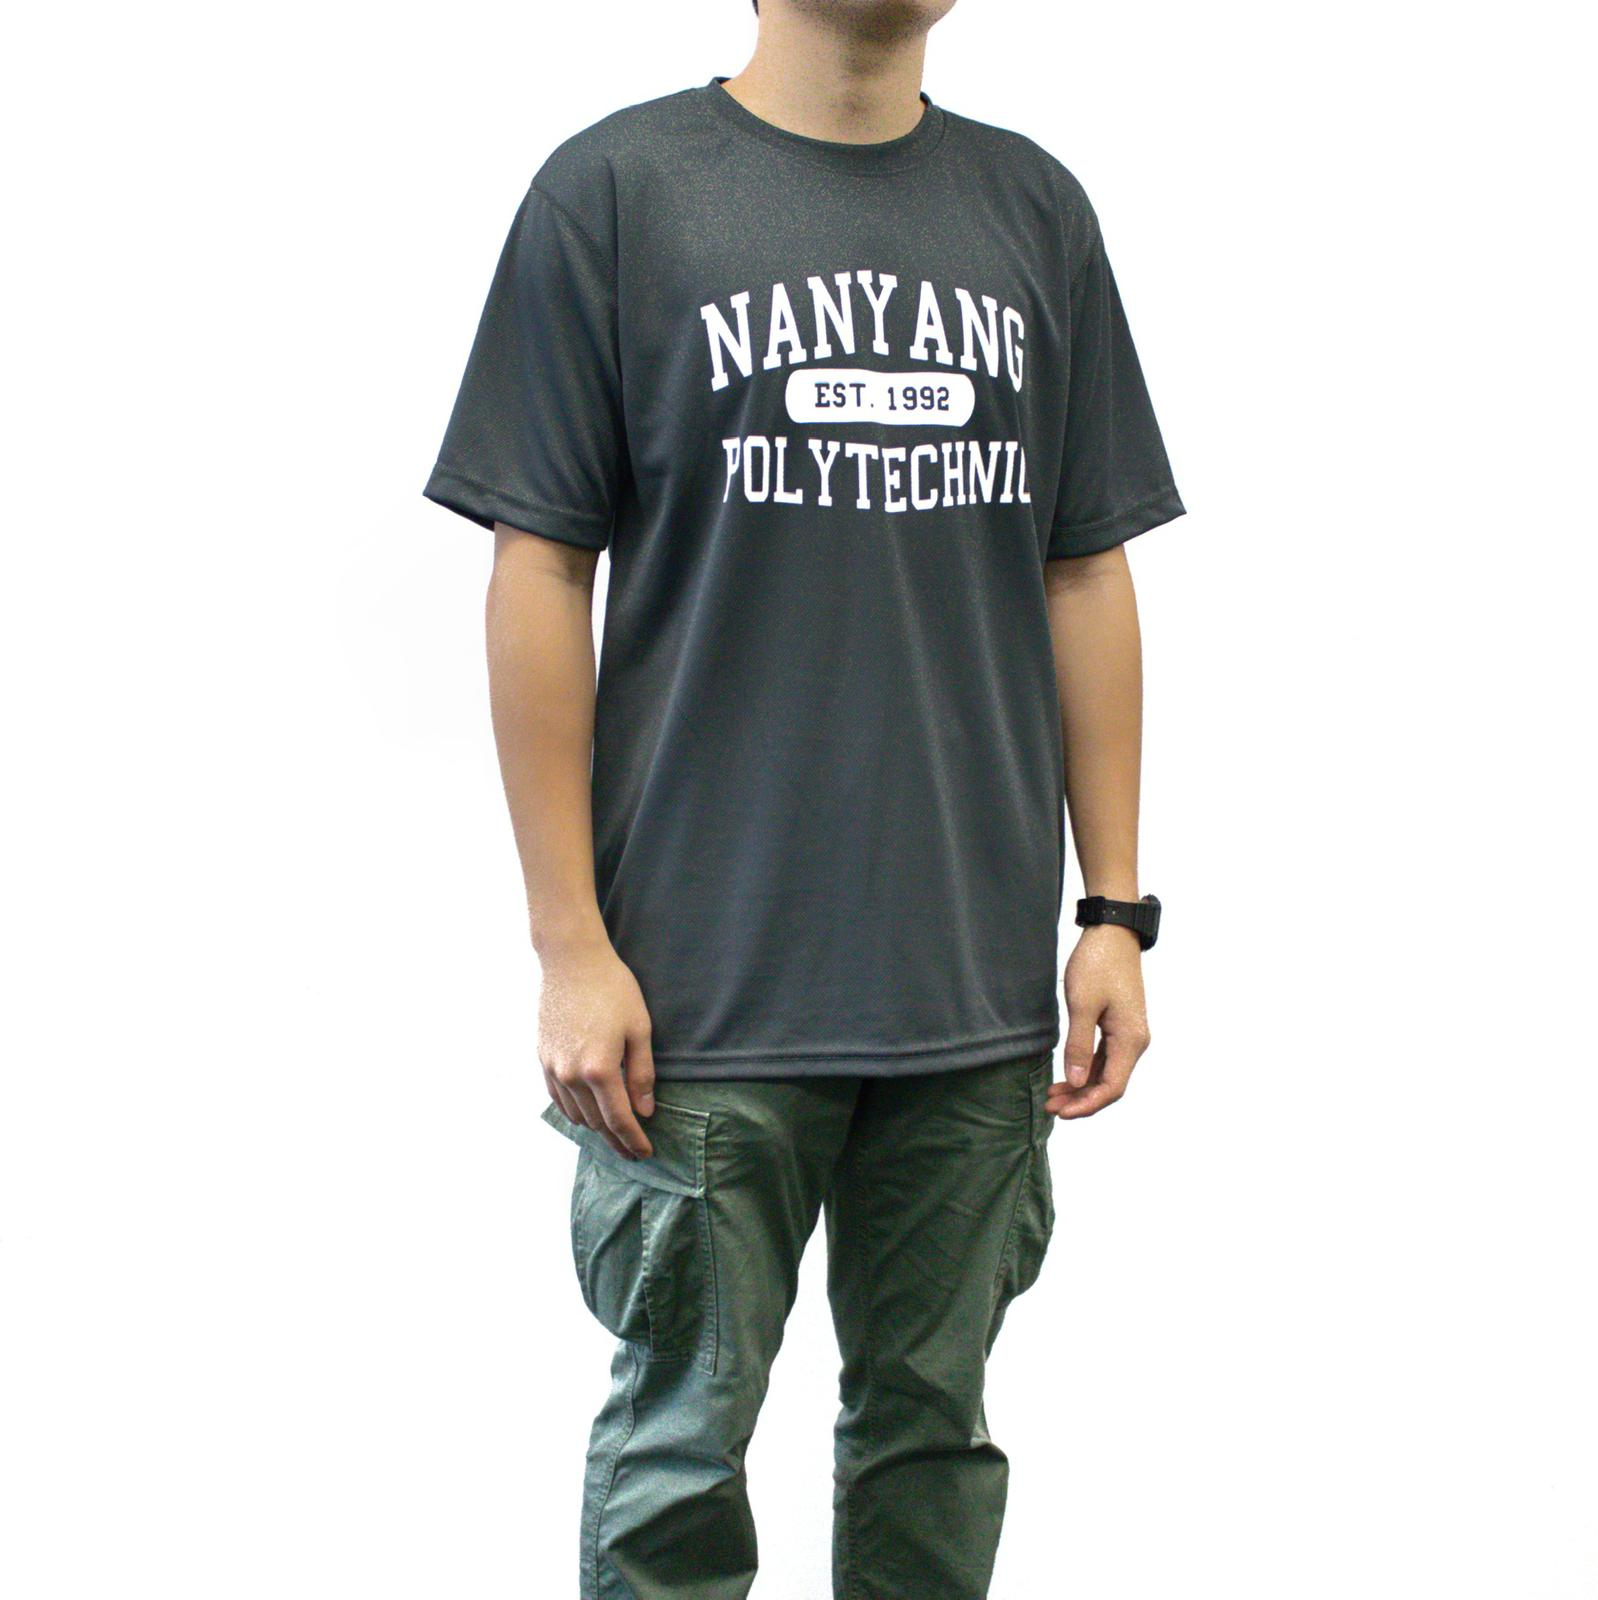 NYP DRI-FIT TEE GREY WITH WHITE FONTS